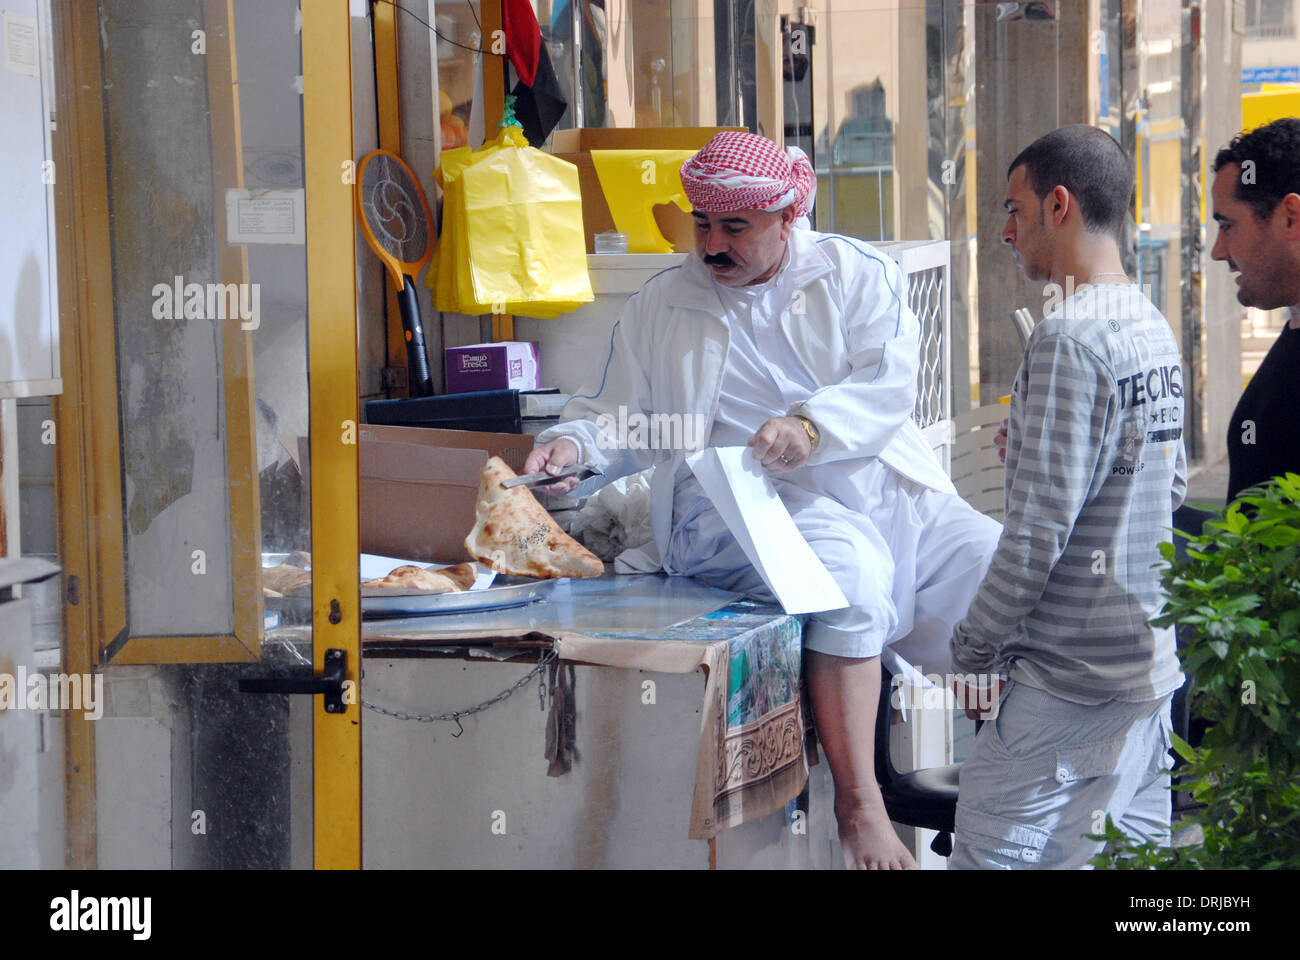 A baker serves some of his customers in Abu Dhabi UAE - Stock Image